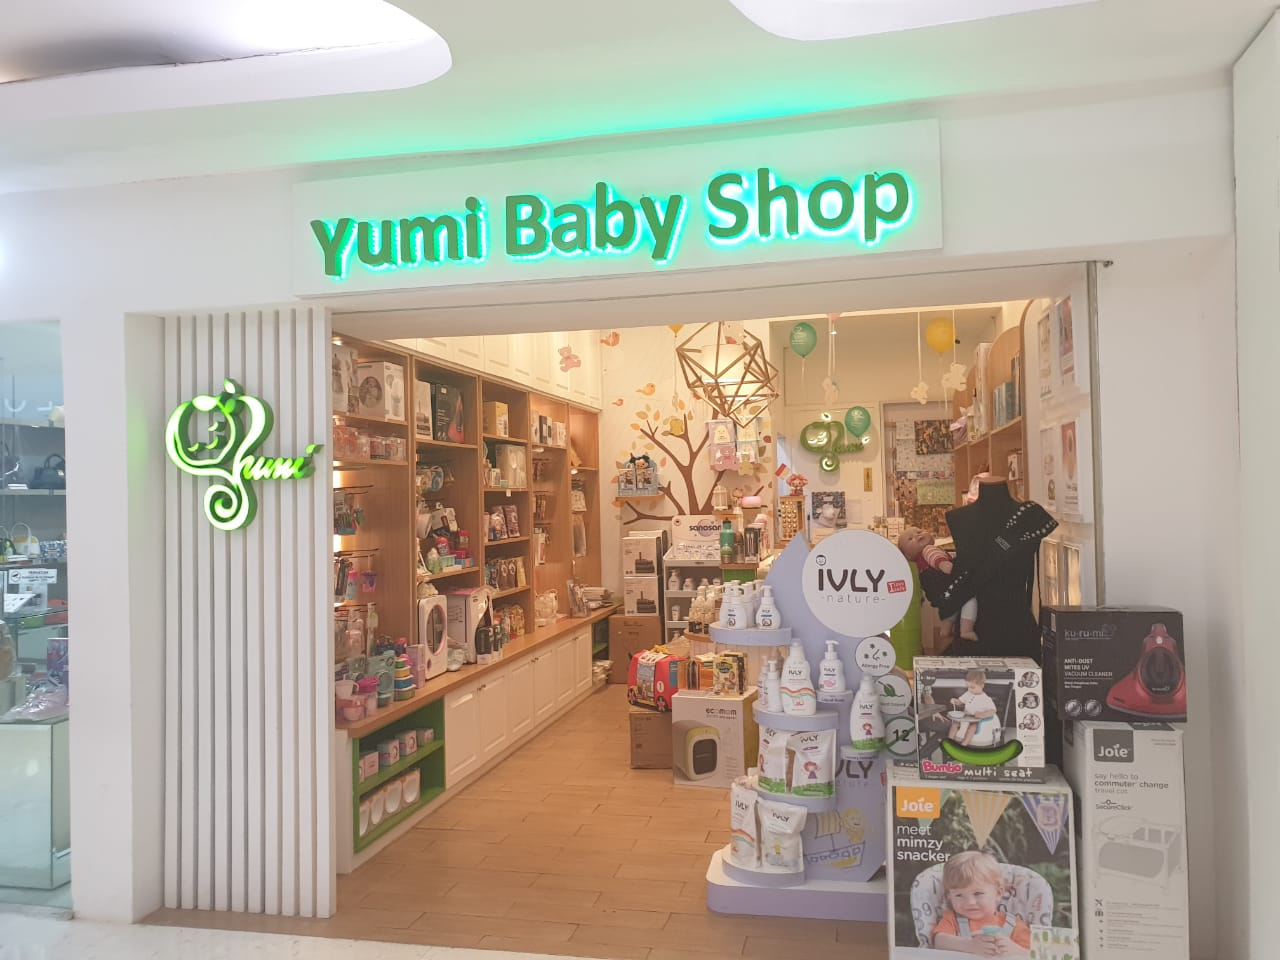 Yumi Baby Shop shop front in lippo mall puri st. moritz